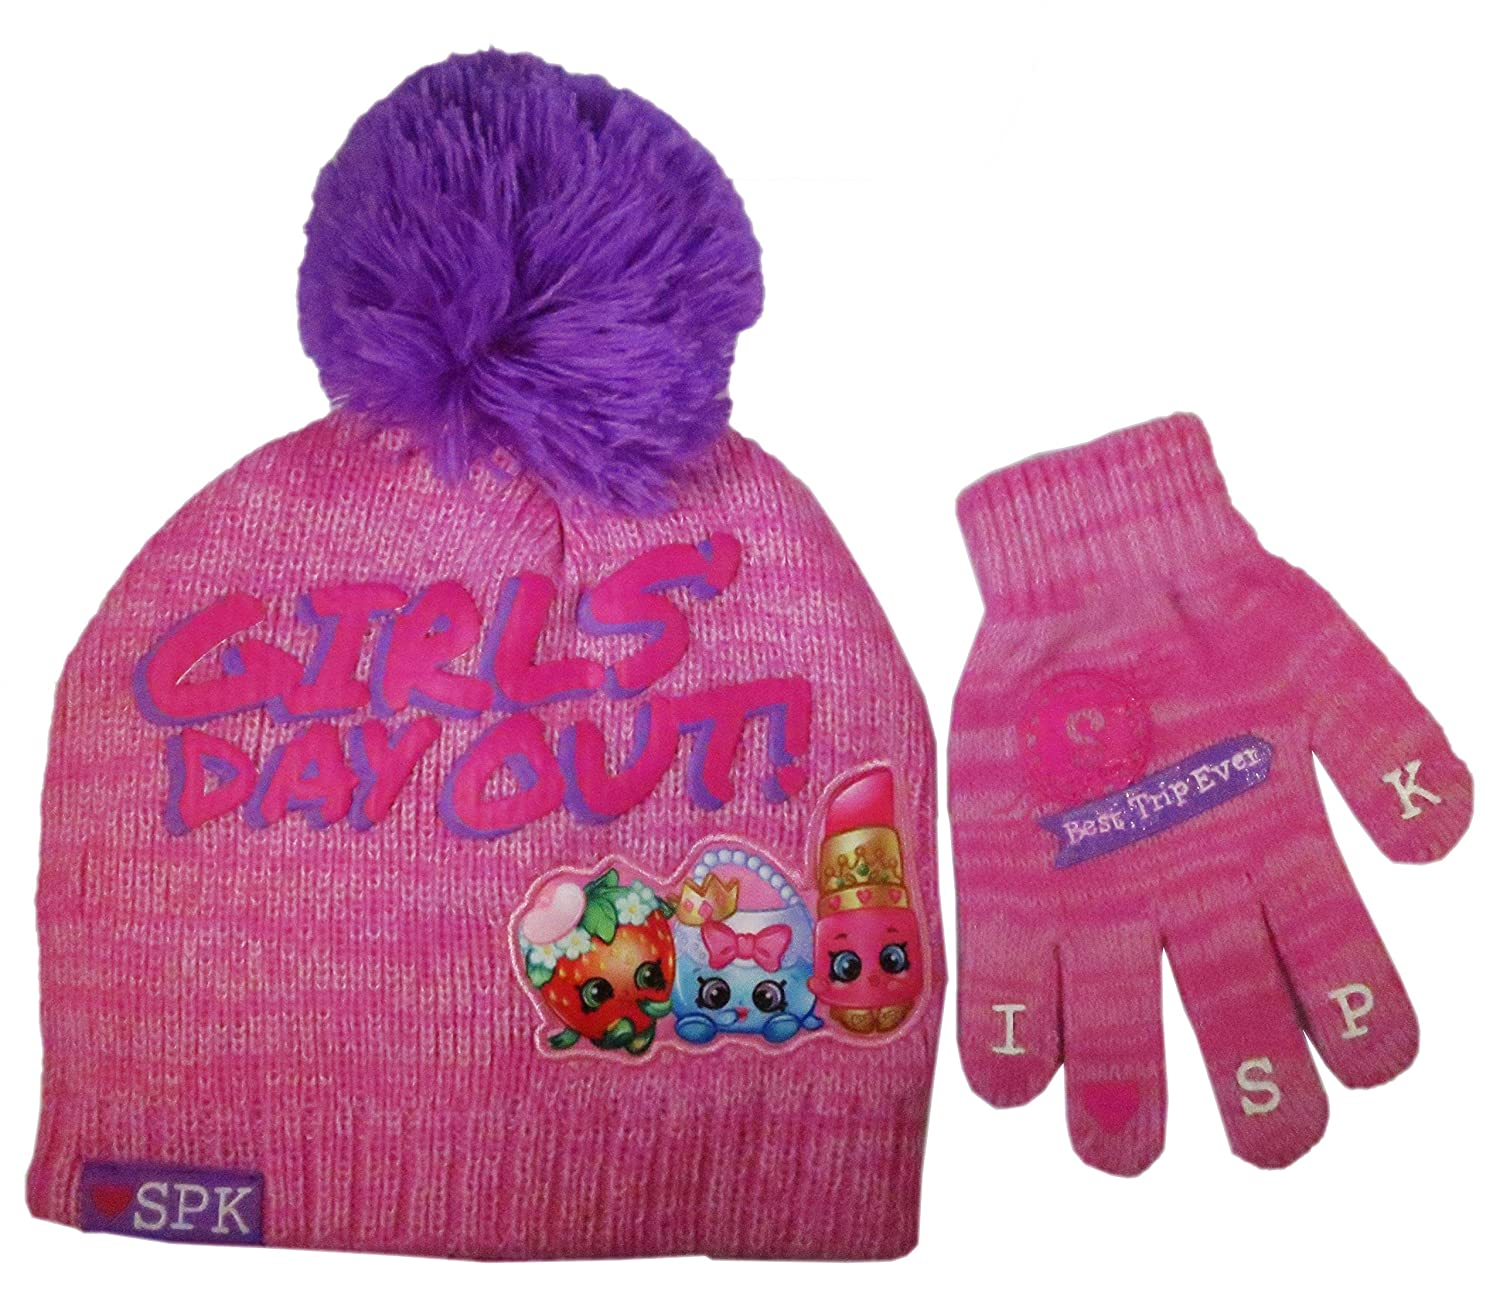 Size Girls 4-14 Shopkins Girls Beanie knitted Winter Hat and 2 pair Glove Set 4014